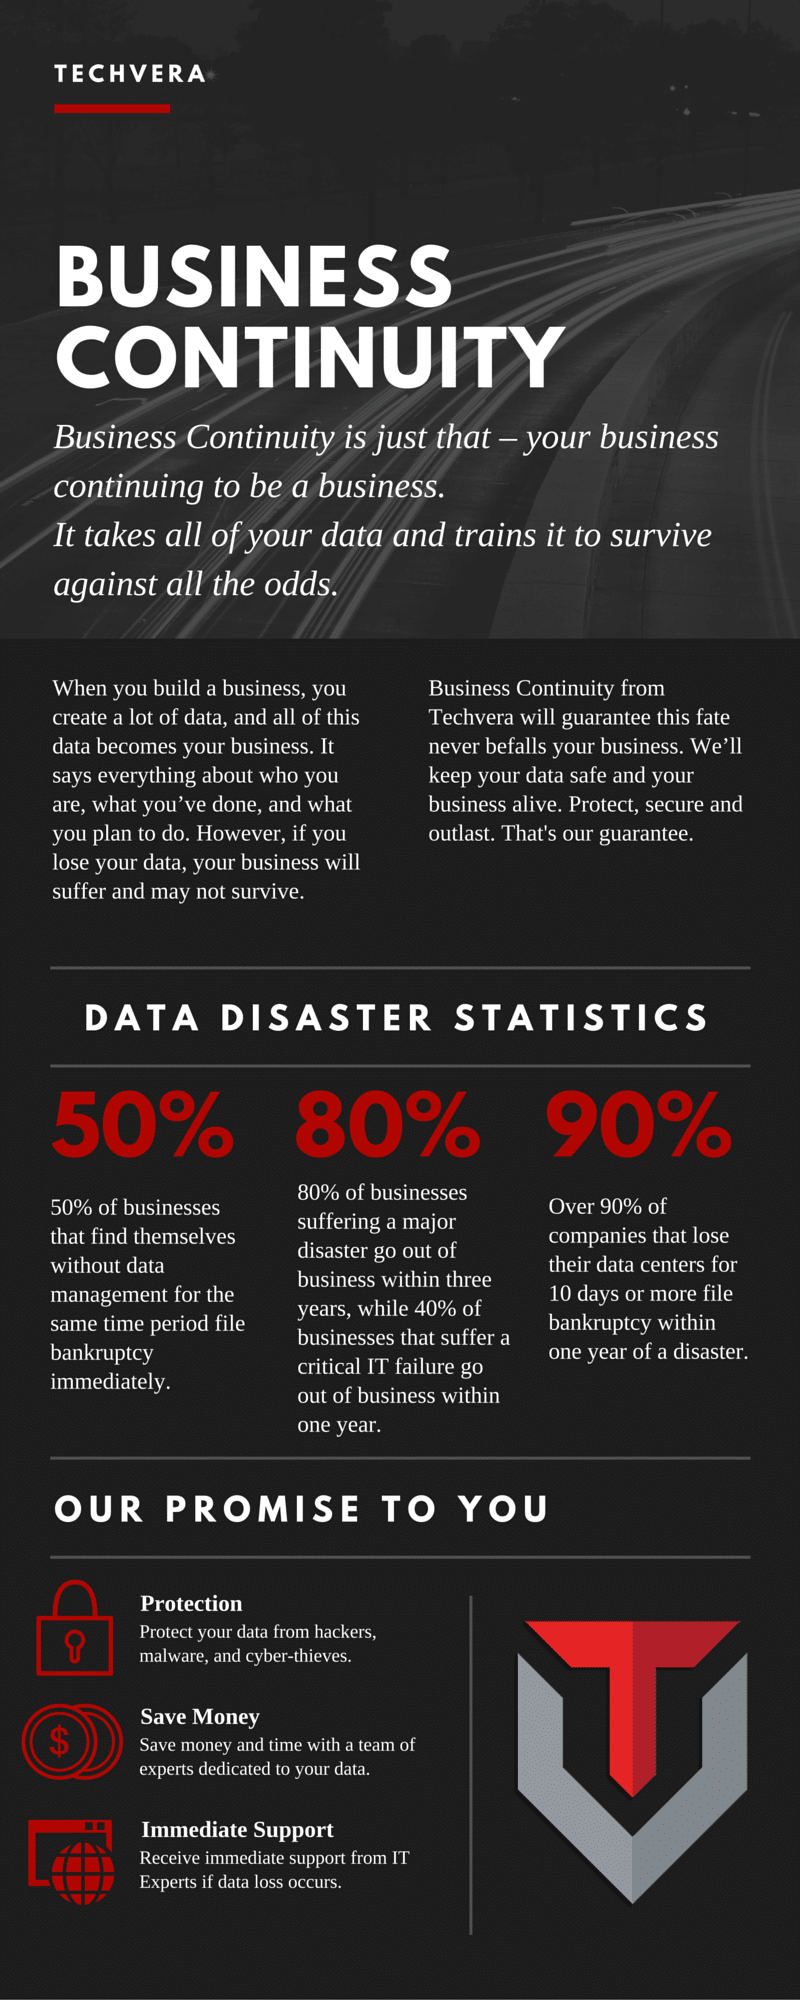 Business Continuity BDR infographic